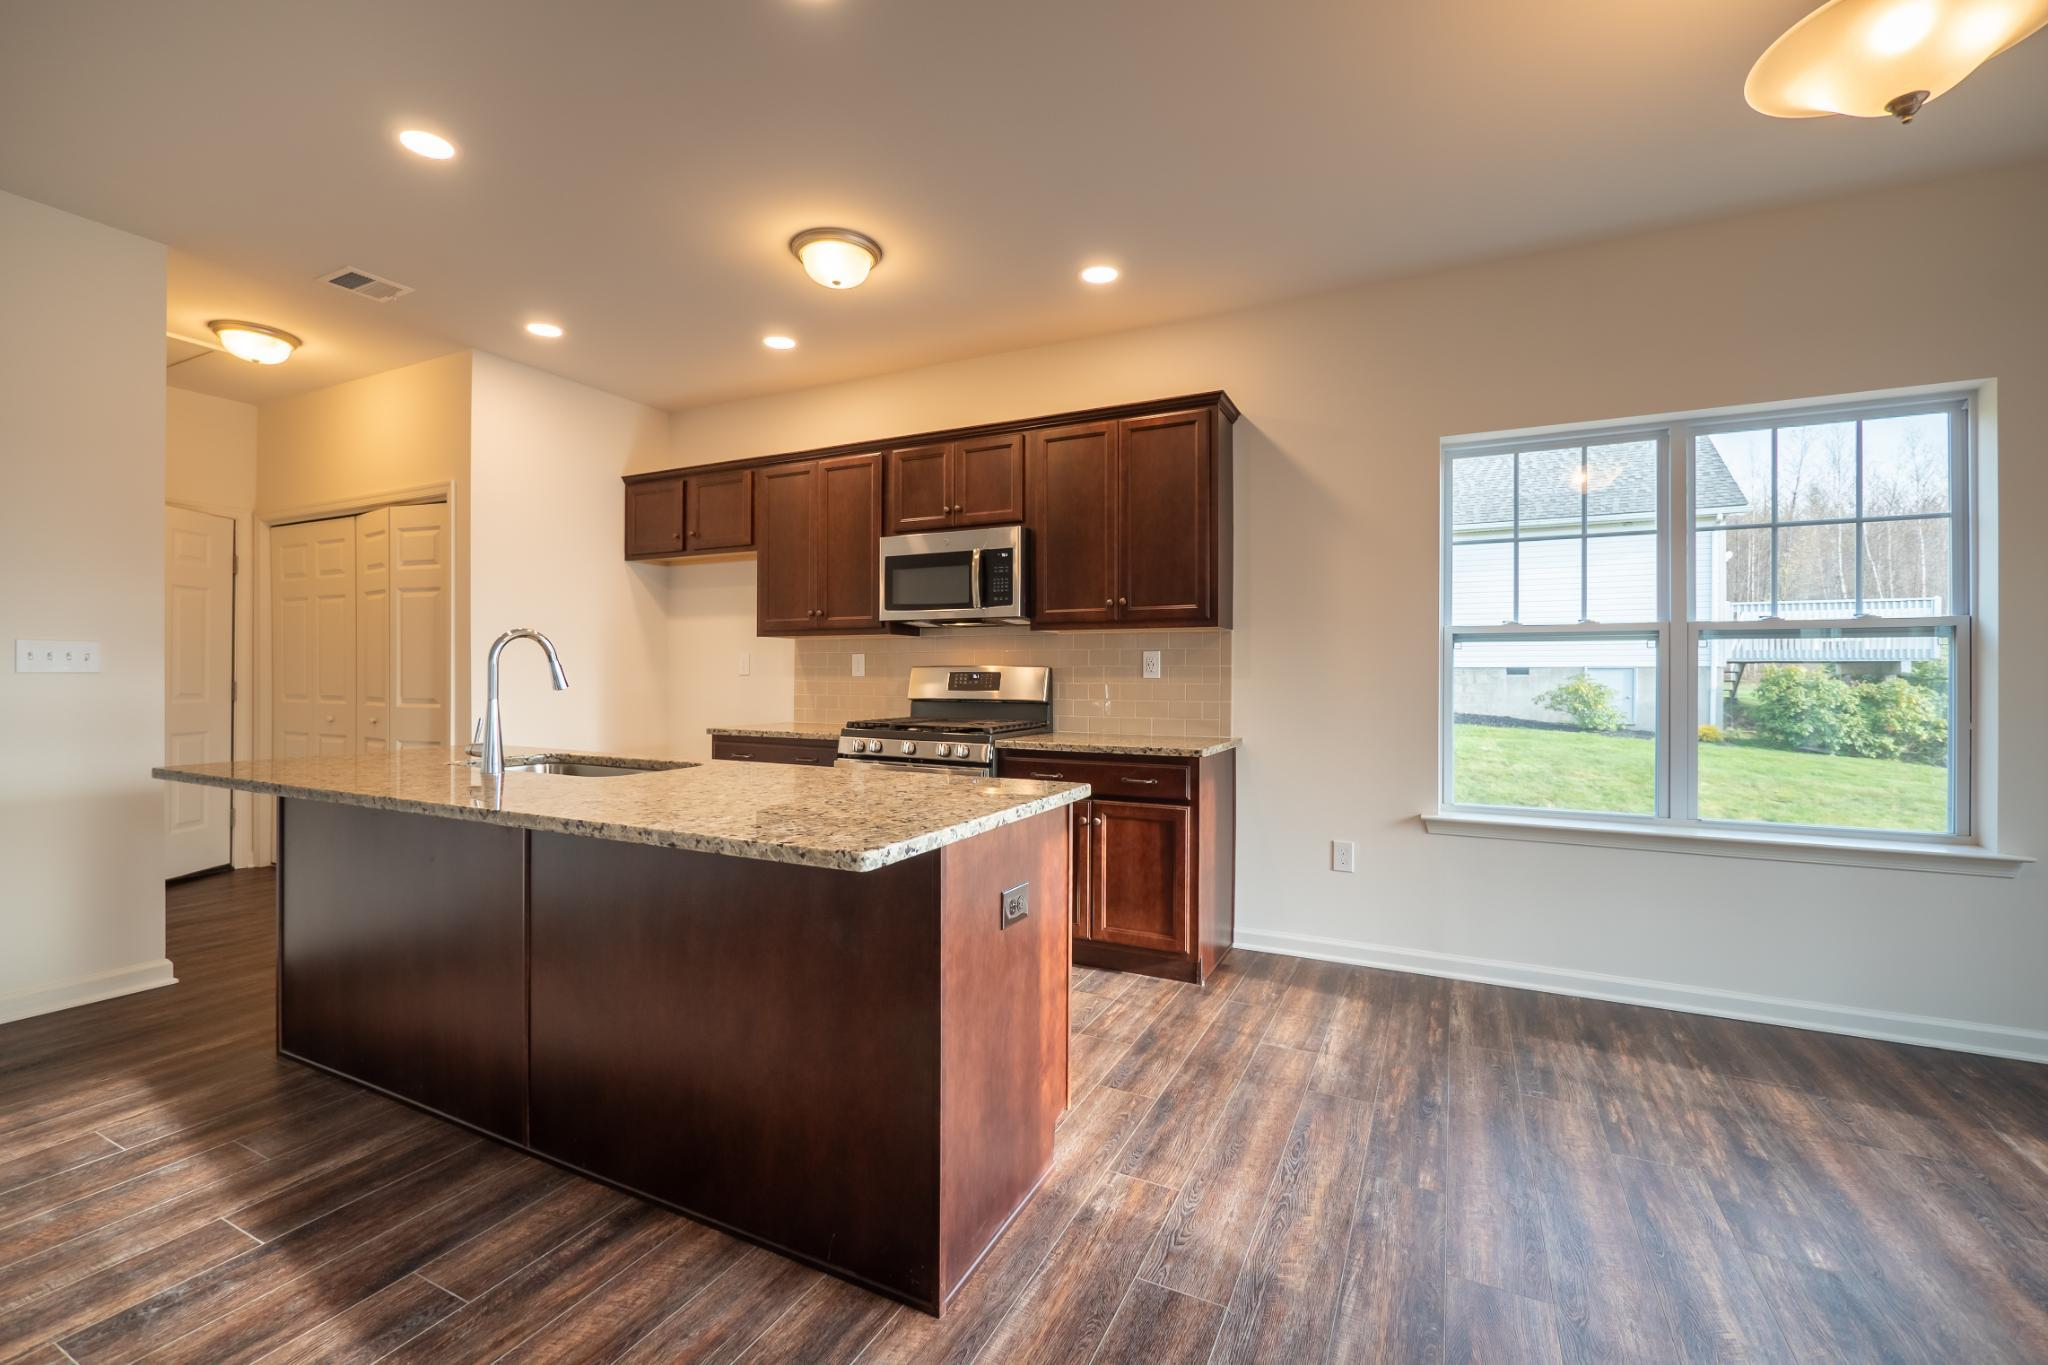 Kitchen featured in the Pinehurst Traditional By Tuskes Homes in Scranton-Wilkes-Barre, PA